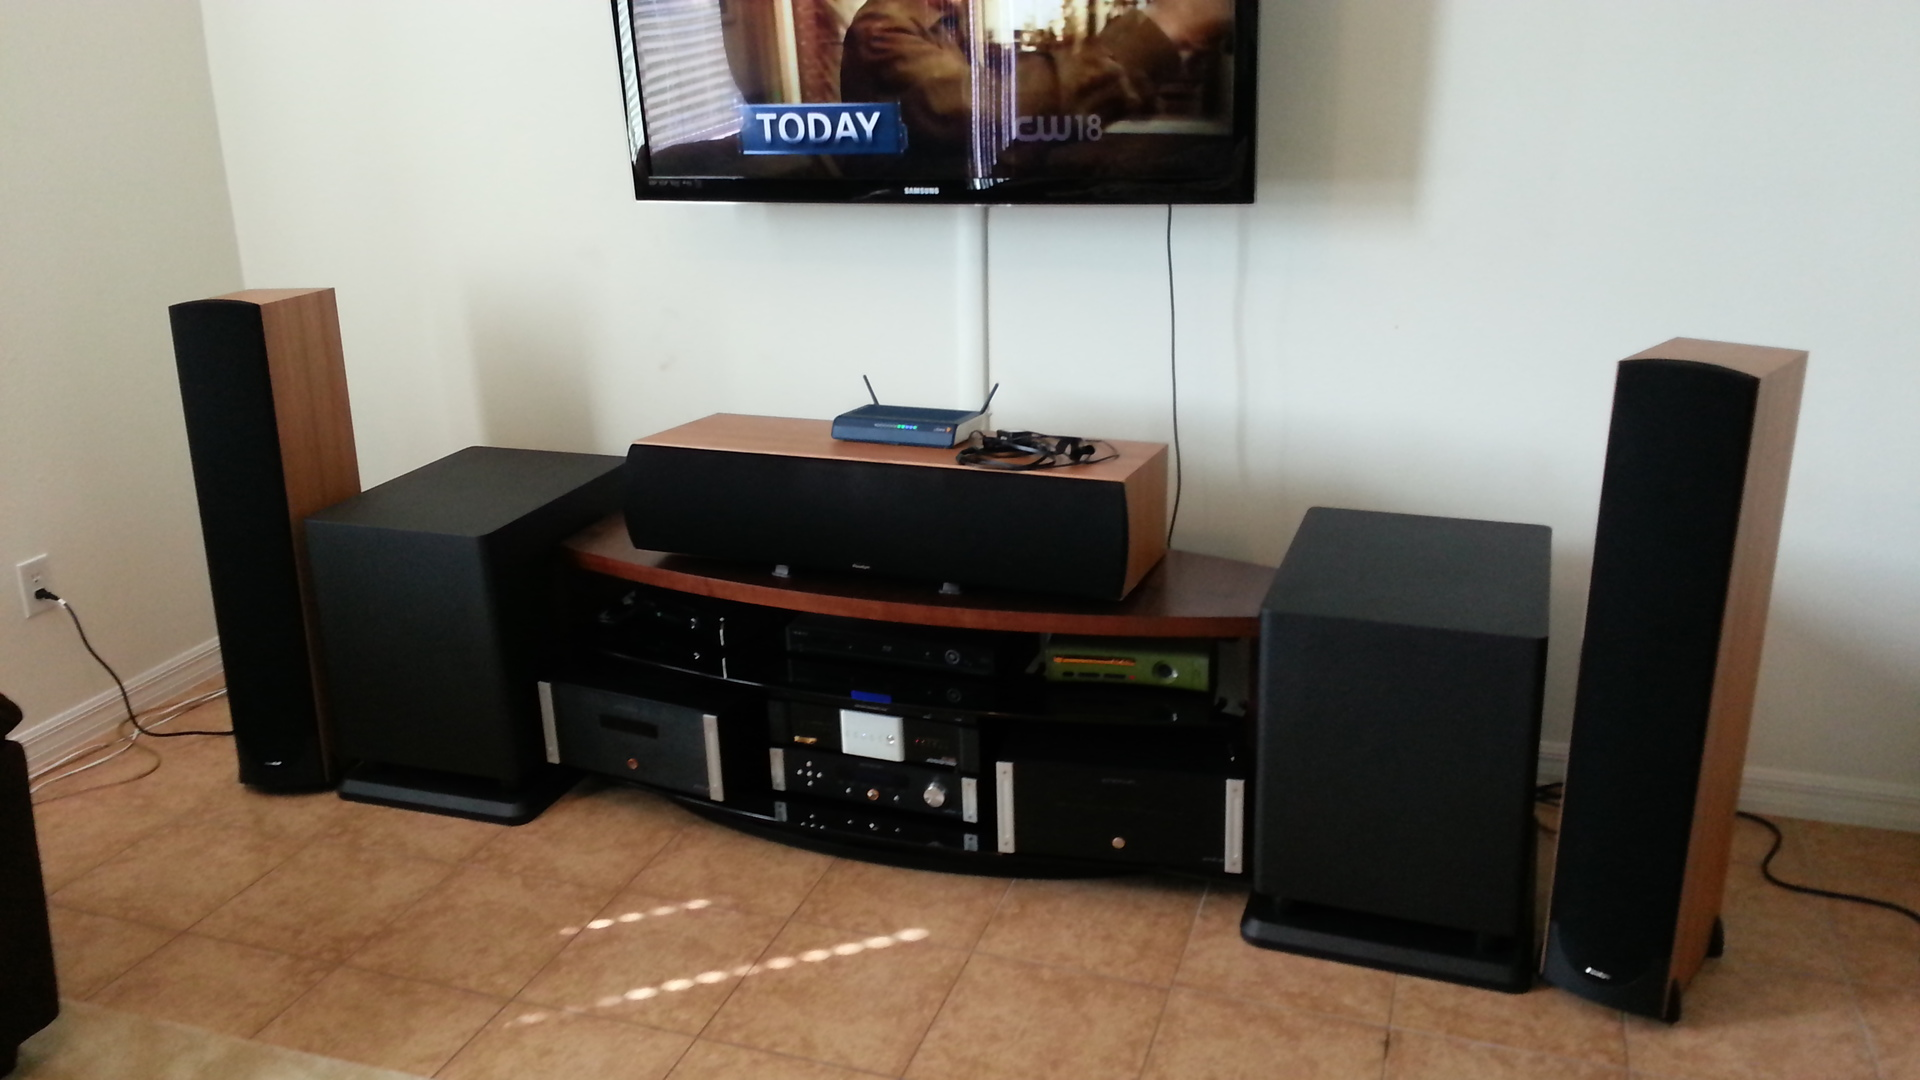 Manonfires Home Theater Gallery Ht Setup 8 Photos Wiring Audio Equipment New Got Rid Of Old Stand And Bought A Bdi Valera Cleaned Up The Amps Off Floor